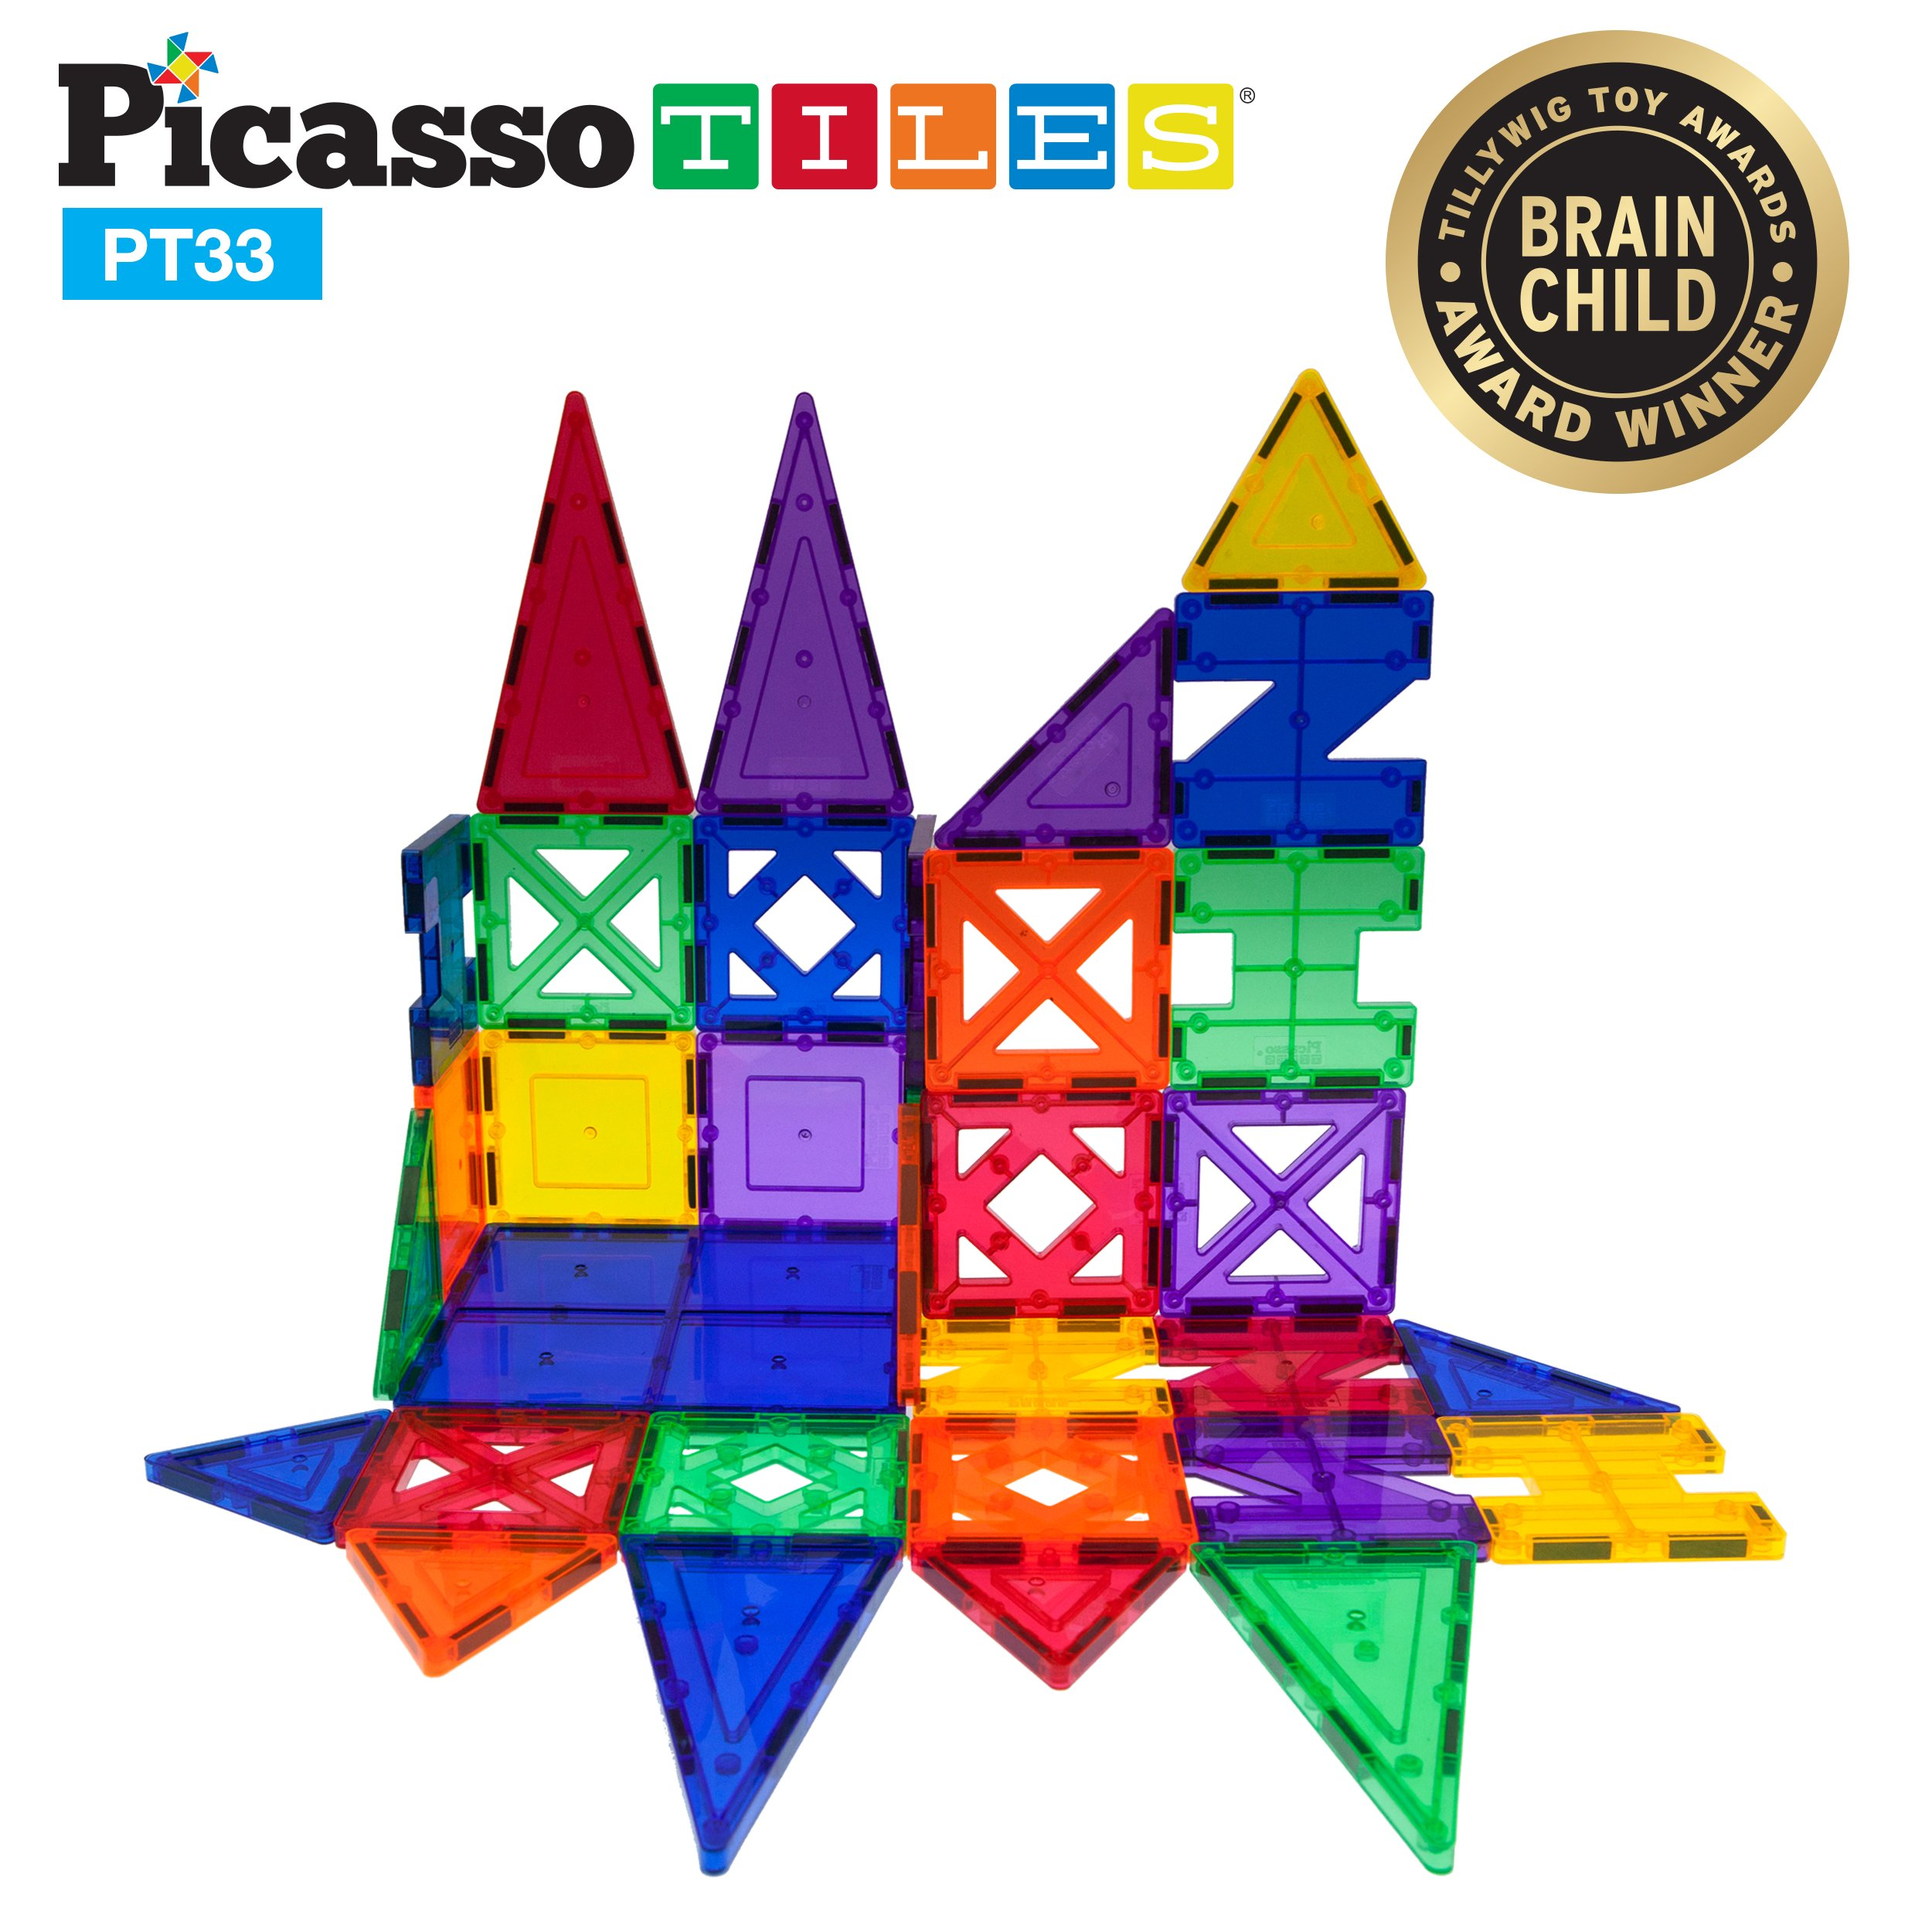 PicassoTiles 33 Piece Building Blocks 33pcs Educational Kit 3D Building Construction Toy Set Clear Magnetic Stacking Block STEM Playboard Magnet Felt Tiles Novelty Game, Creativity Beyond Imagination by PicassoTiles